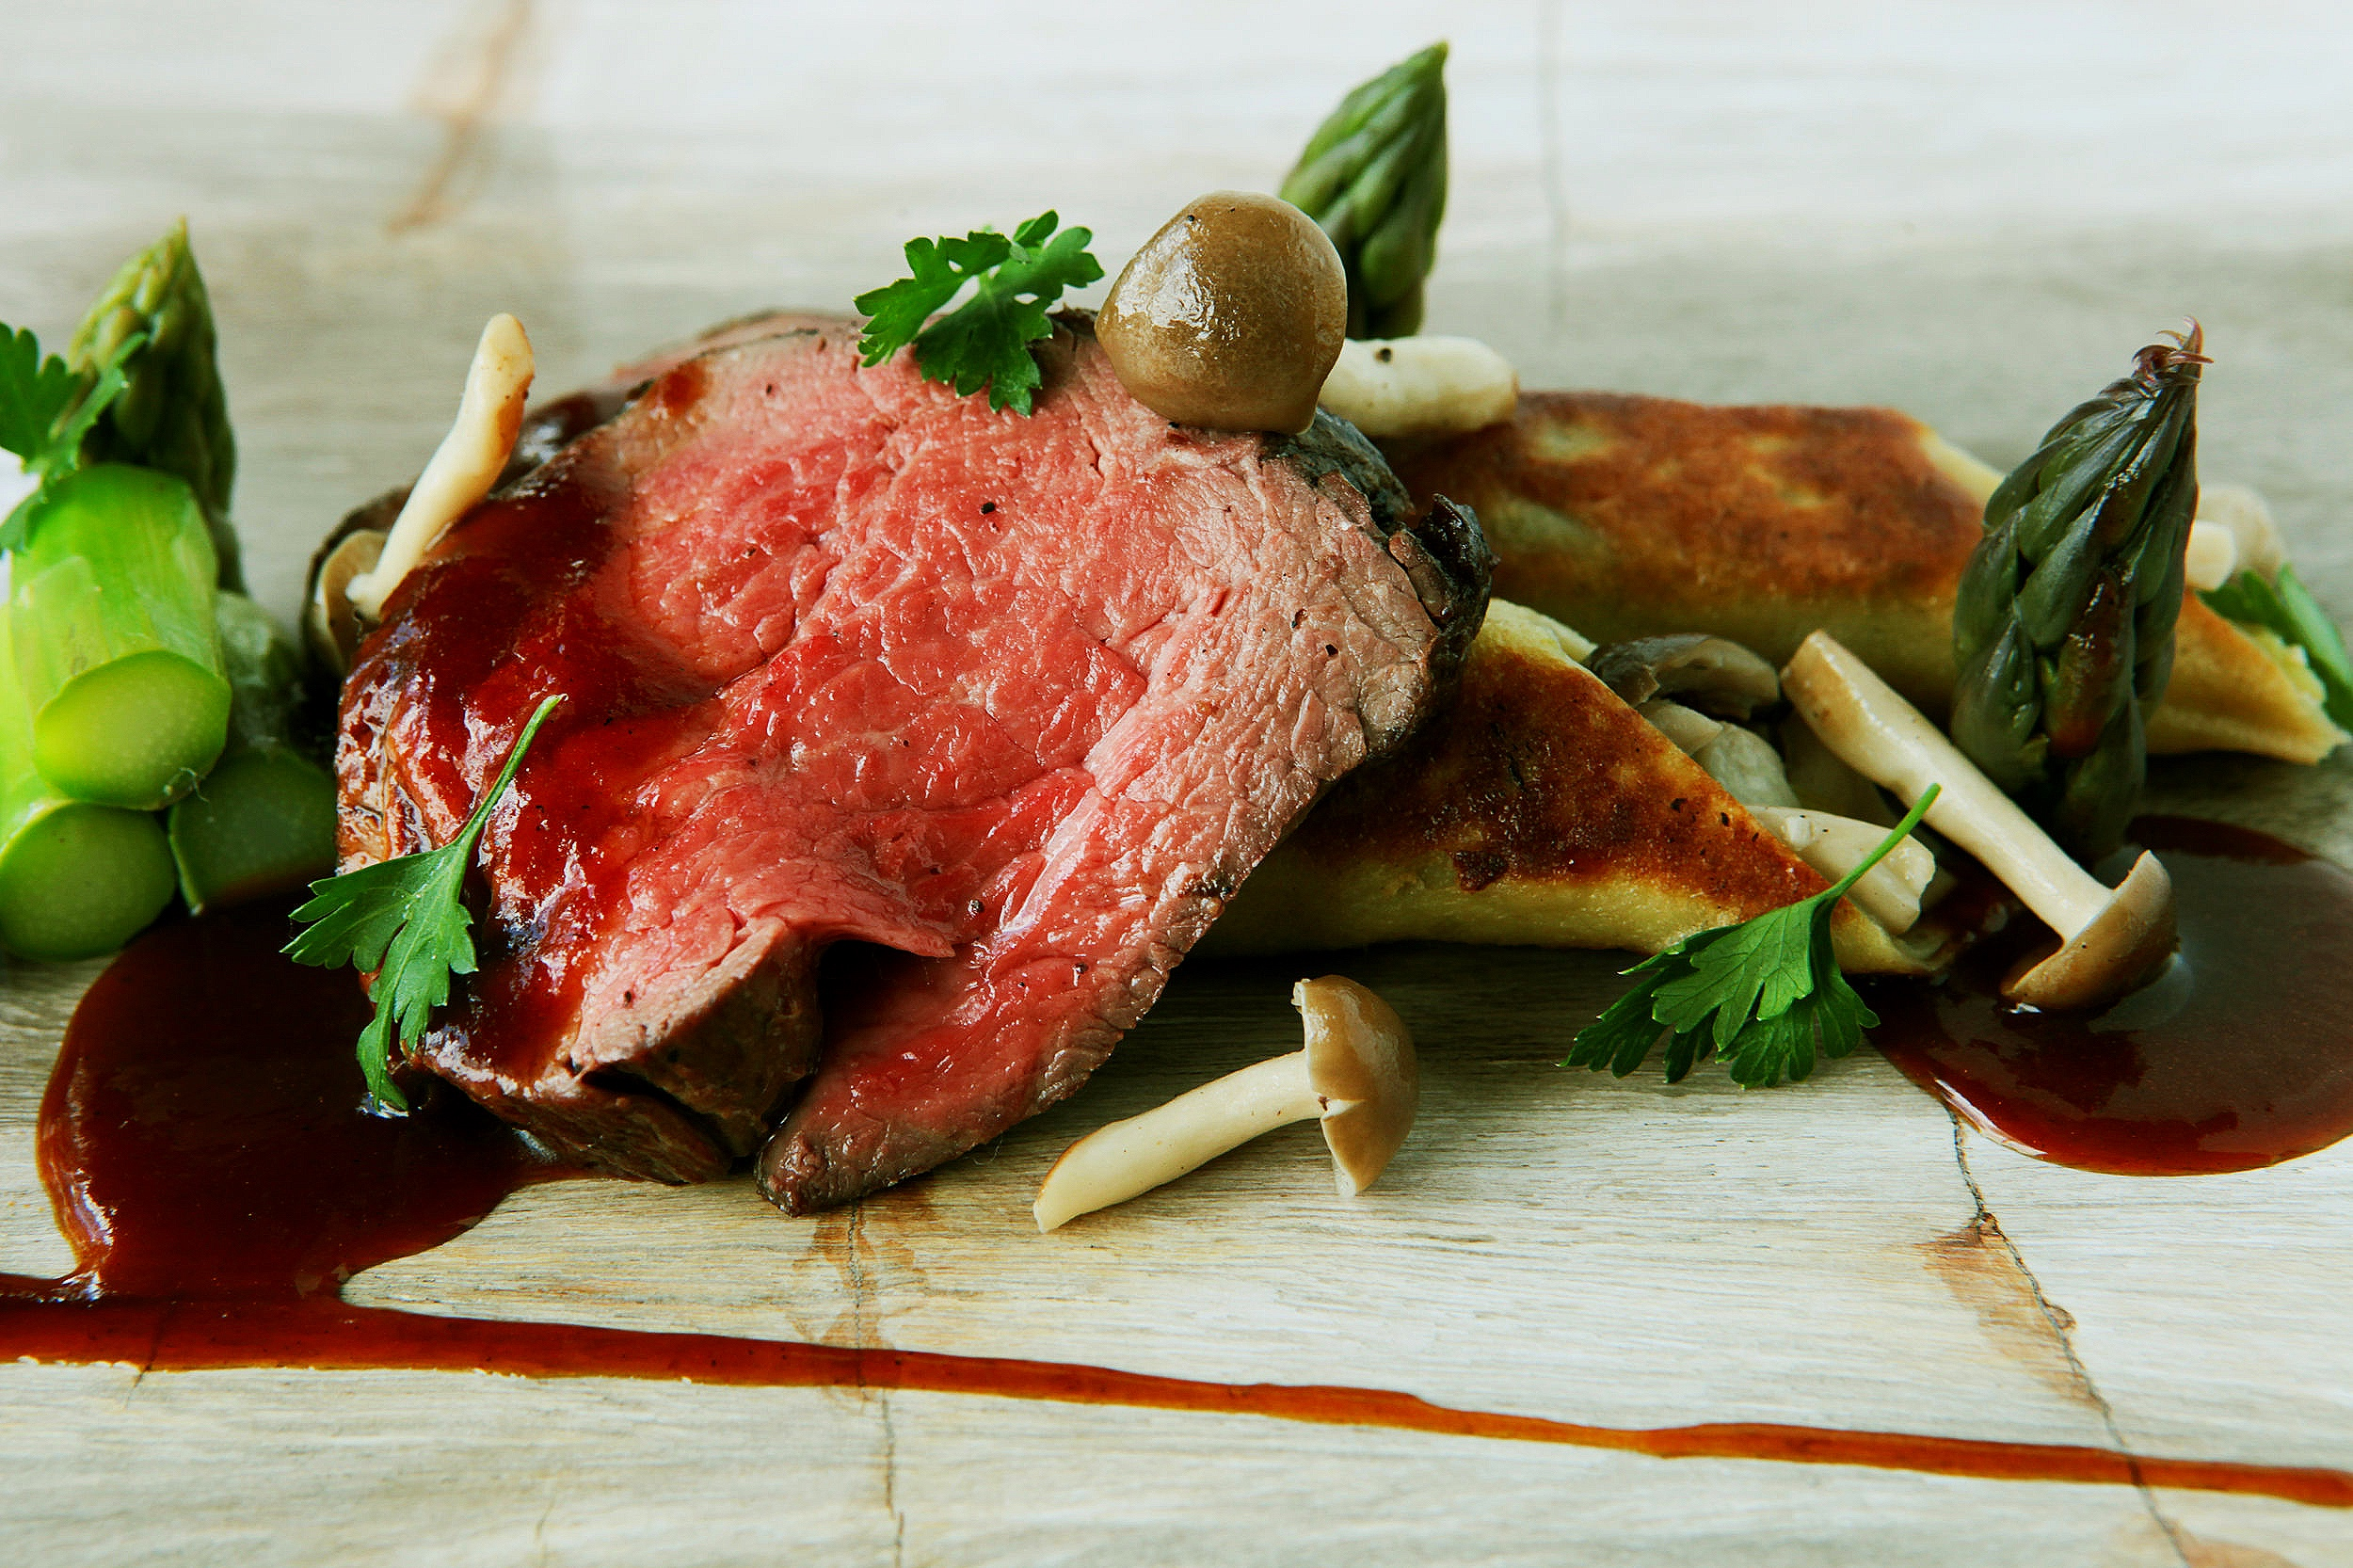 Beef tenderloin with red wine reduction, asparagus and chanterelle mushroom crepes